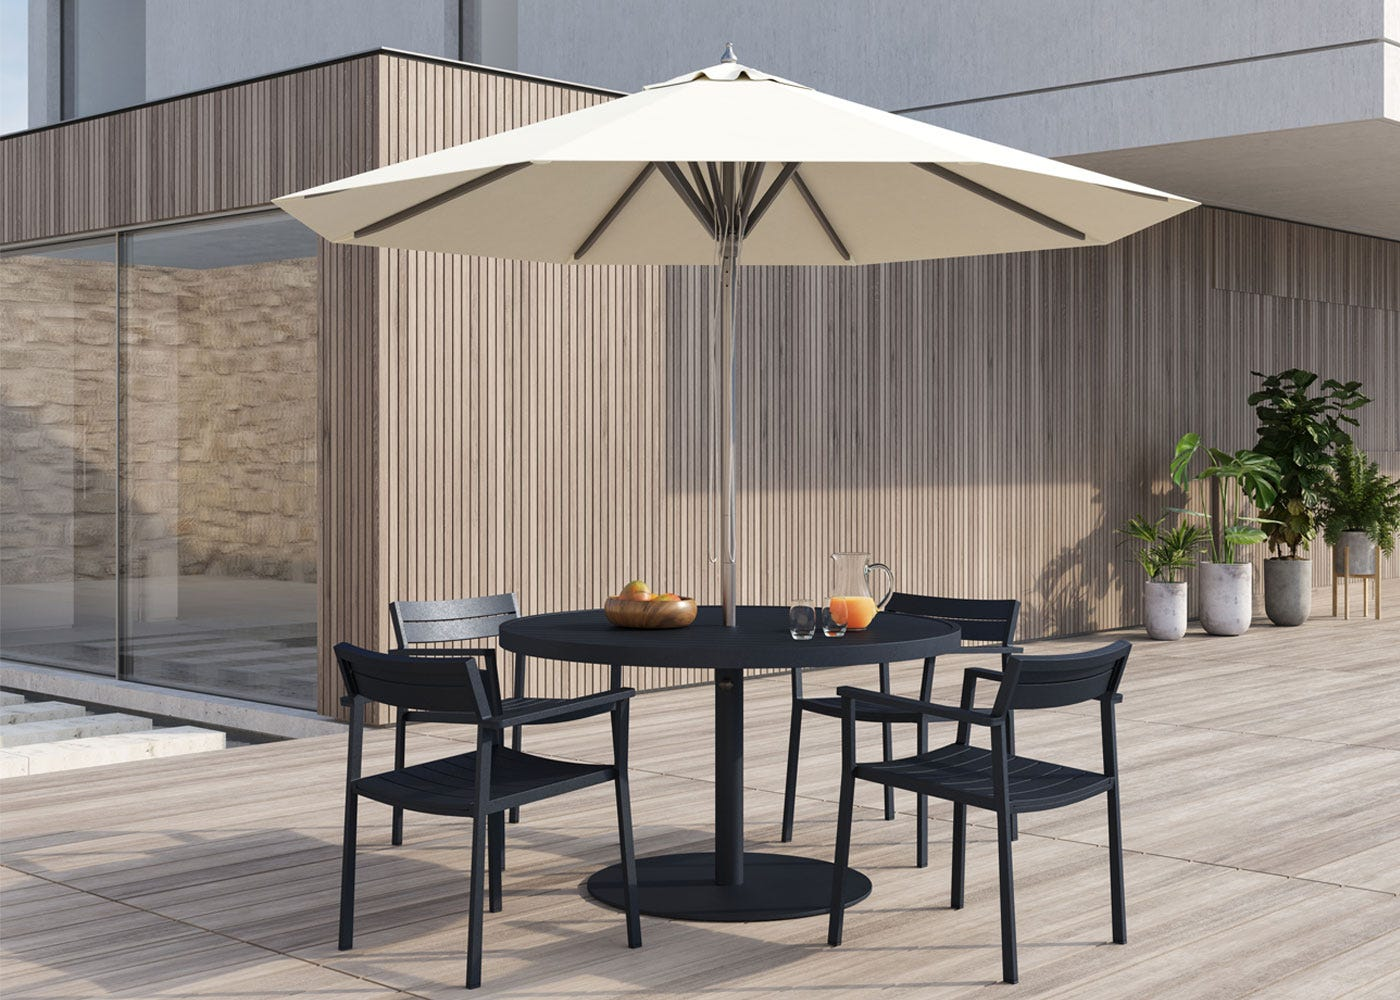 EOS Circular Outdoor Dining Table - Black with matching chairs.